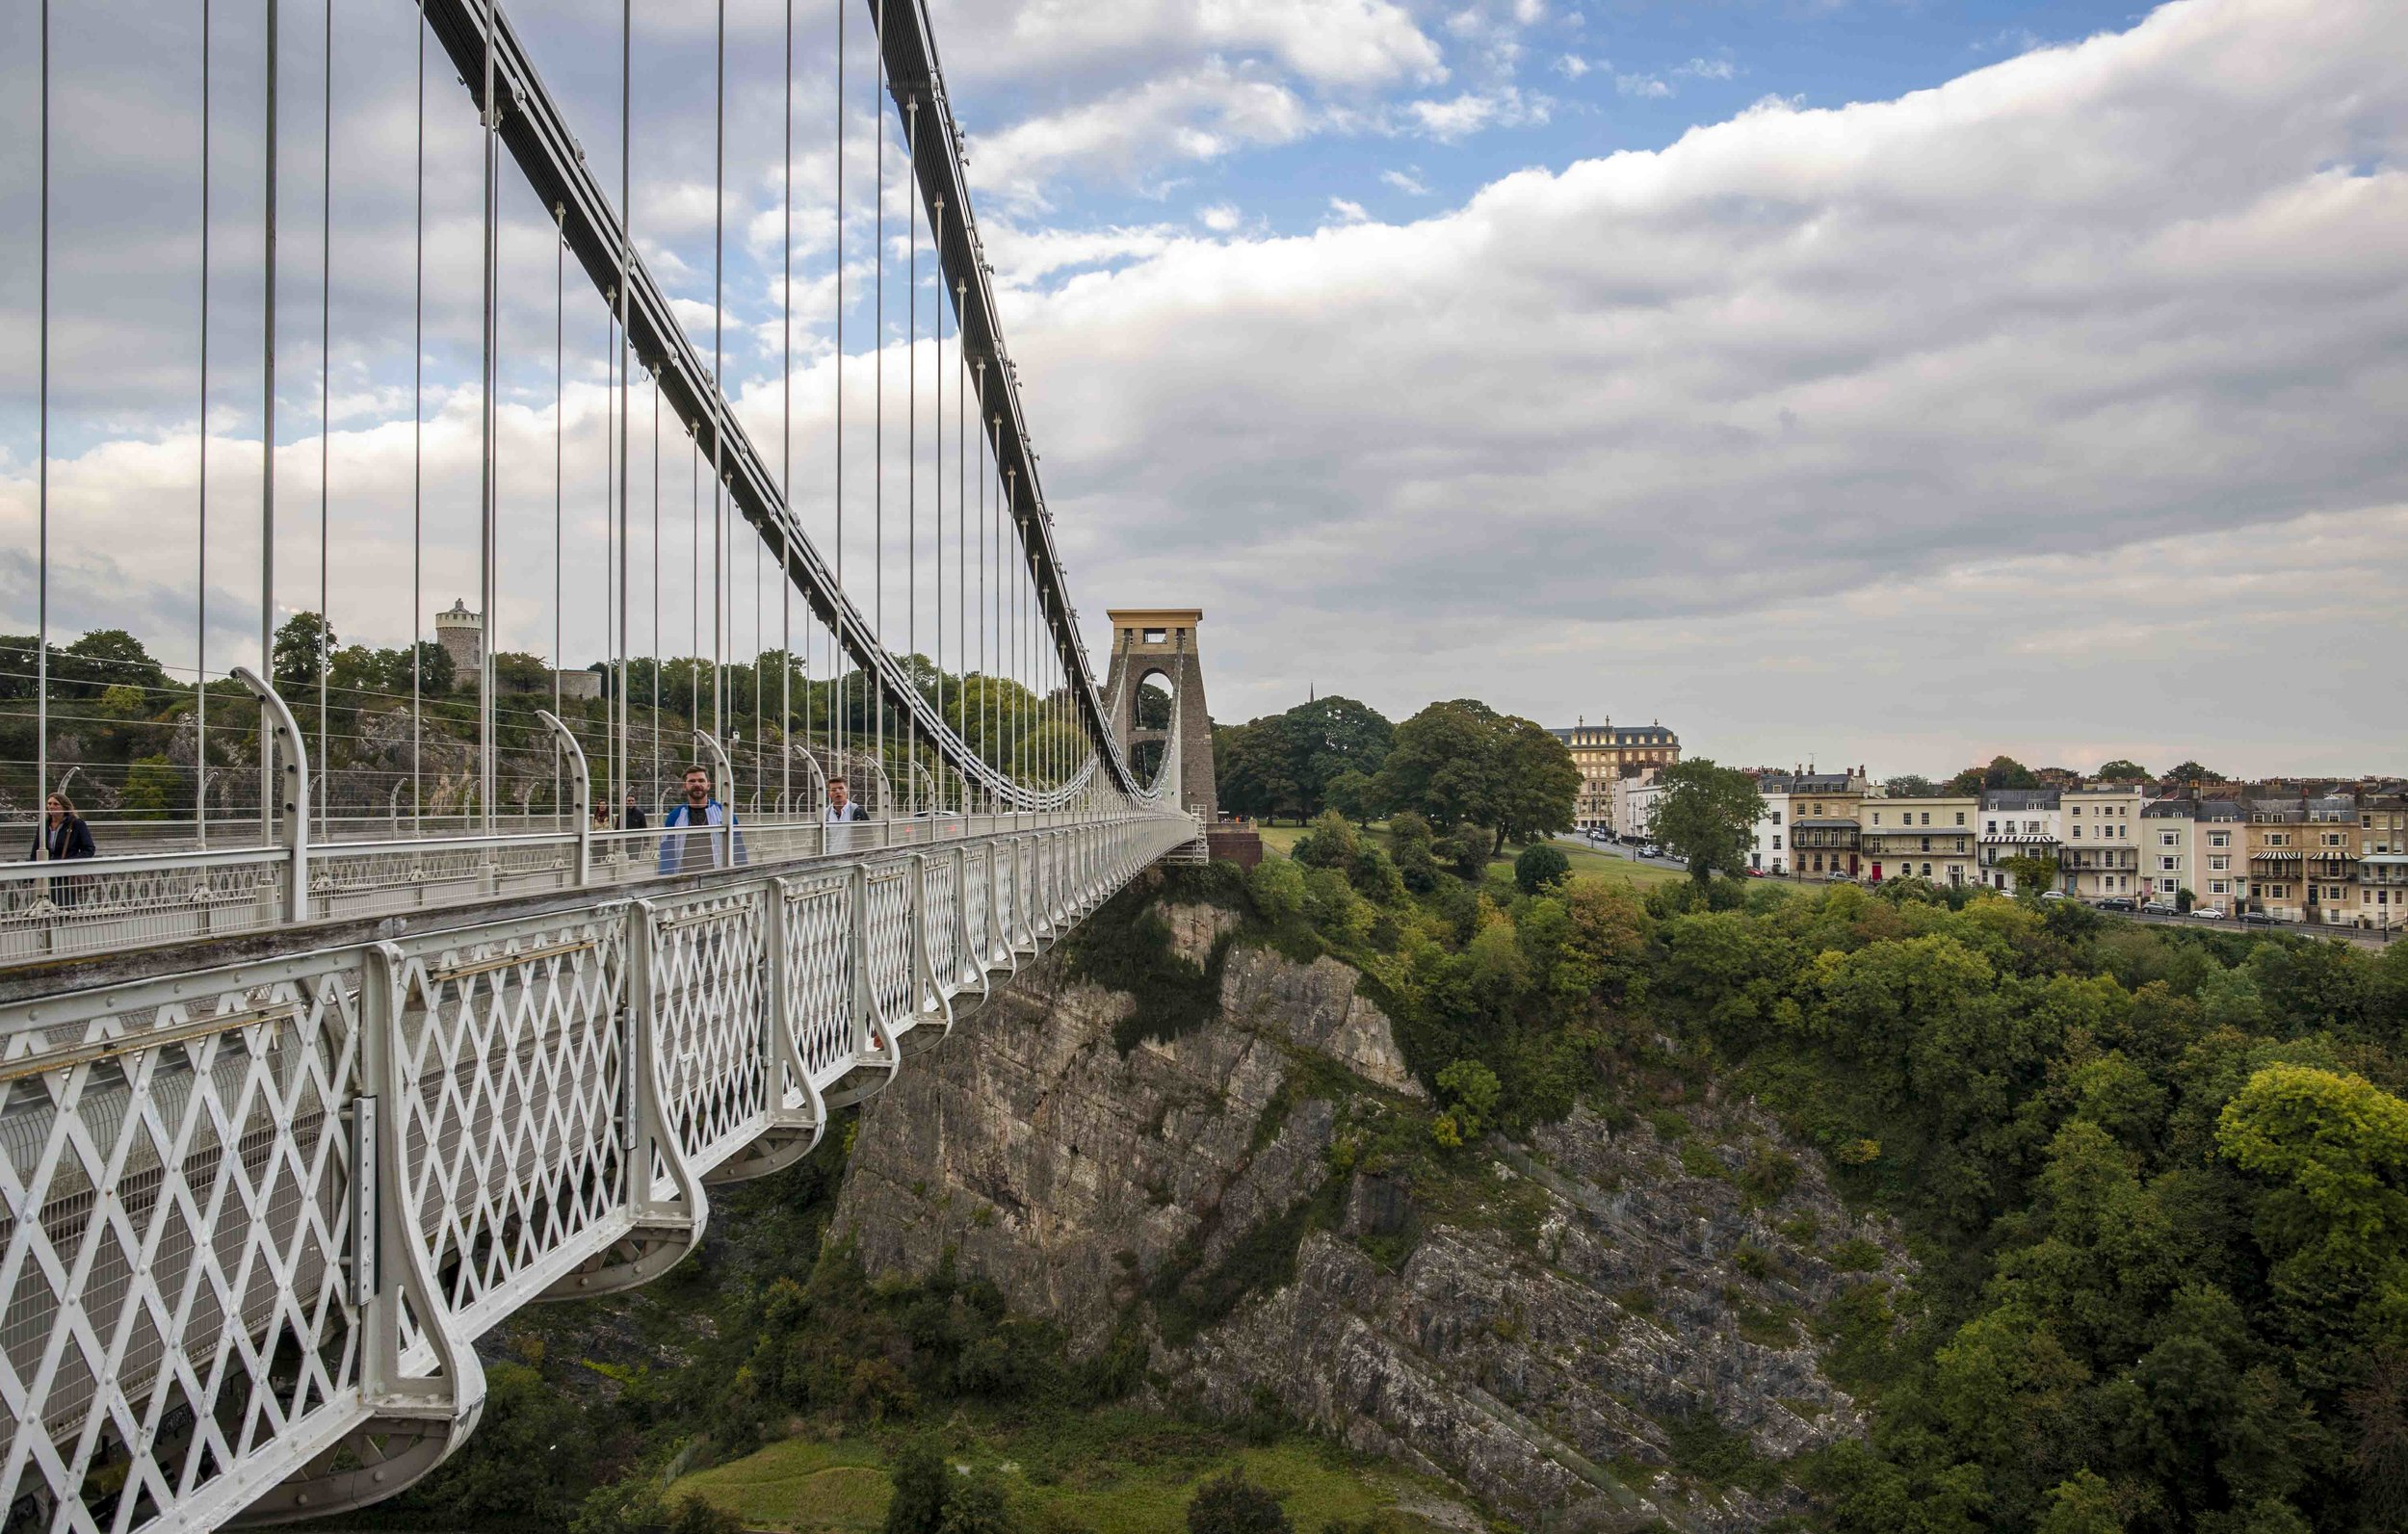 More suspension bridge in Bristol